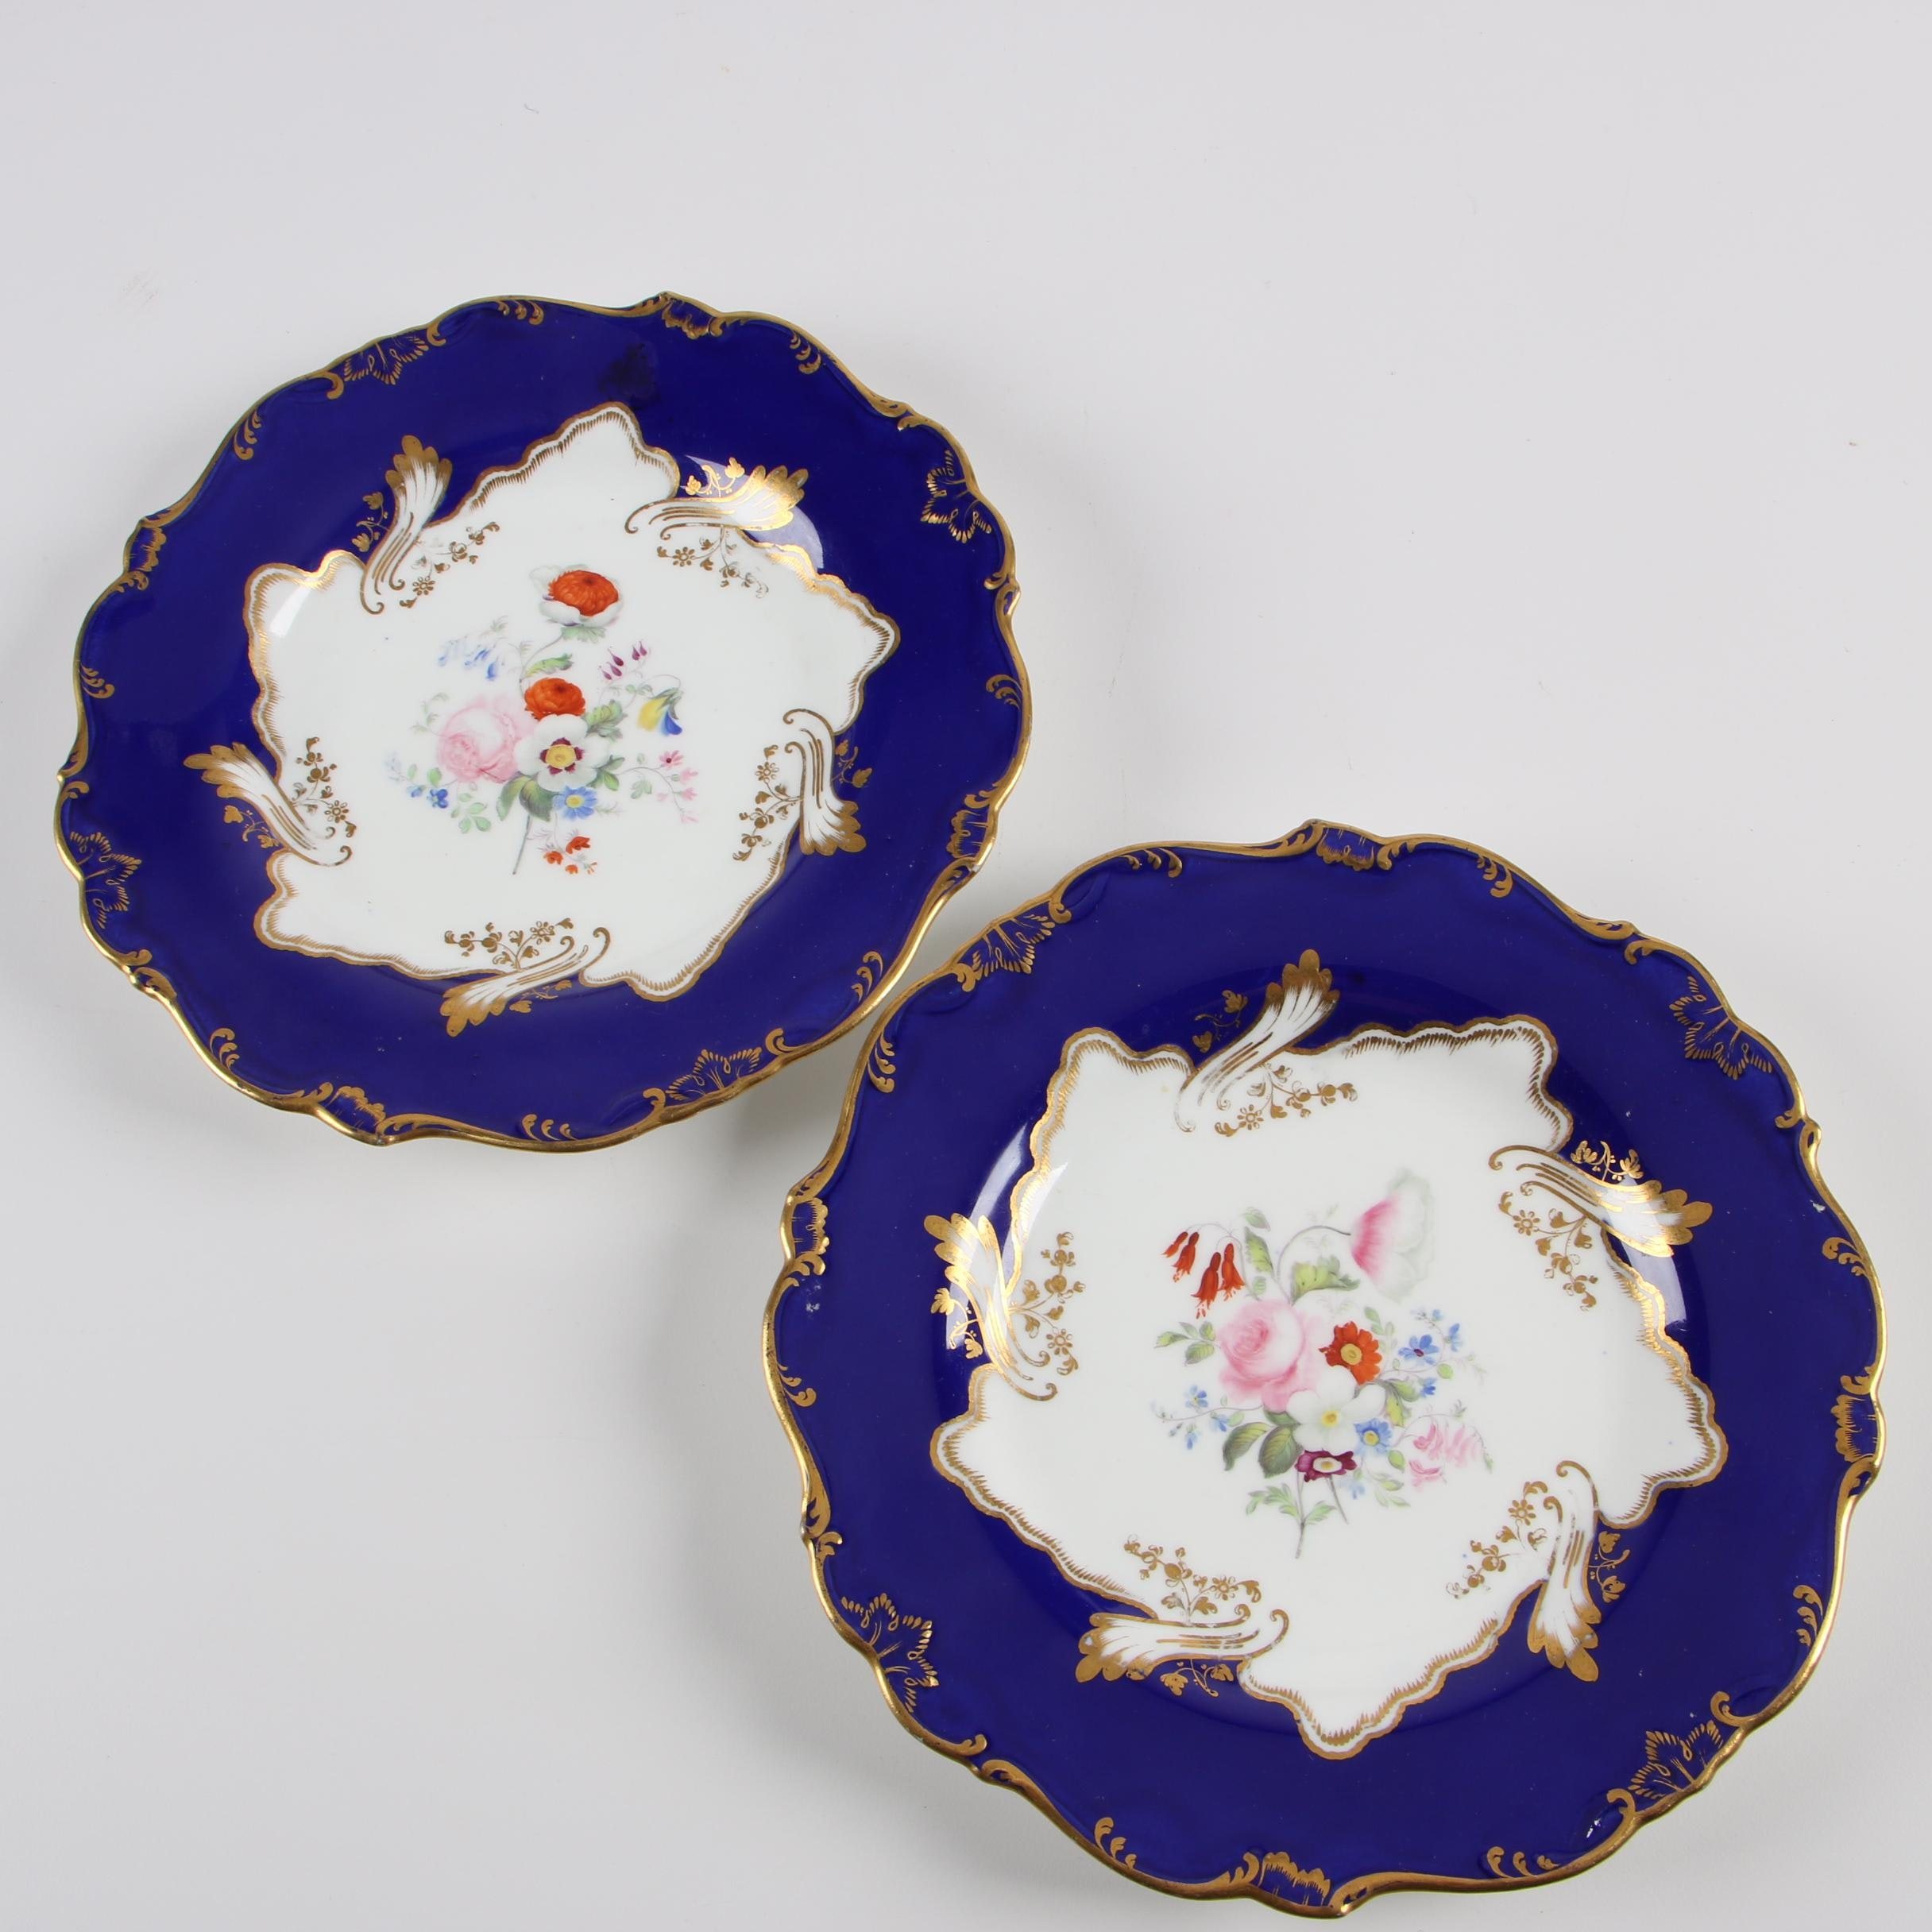 Antique English Porcelain Blue Ground Gilded Plates c. 1835-50